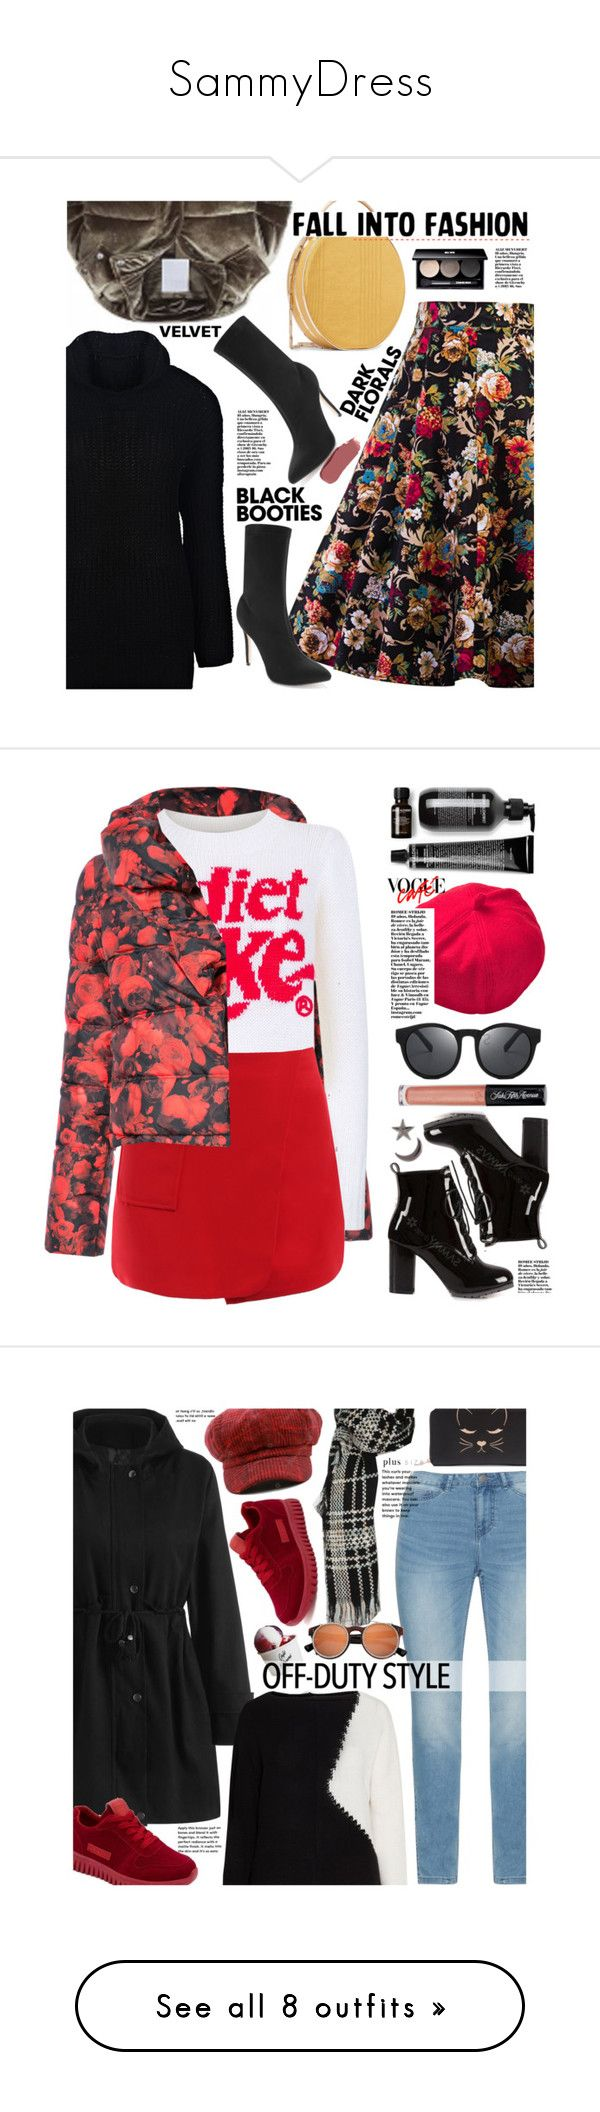 """""""SammyDress"""" by beebeely-look ❤ liked on Polyvore featuring Eddie Borgo, Ilia, Edward Bess, StreetStyle, sammydress, streetwear, blackbooties, darkflorals, Givenchy and Wildfox"""